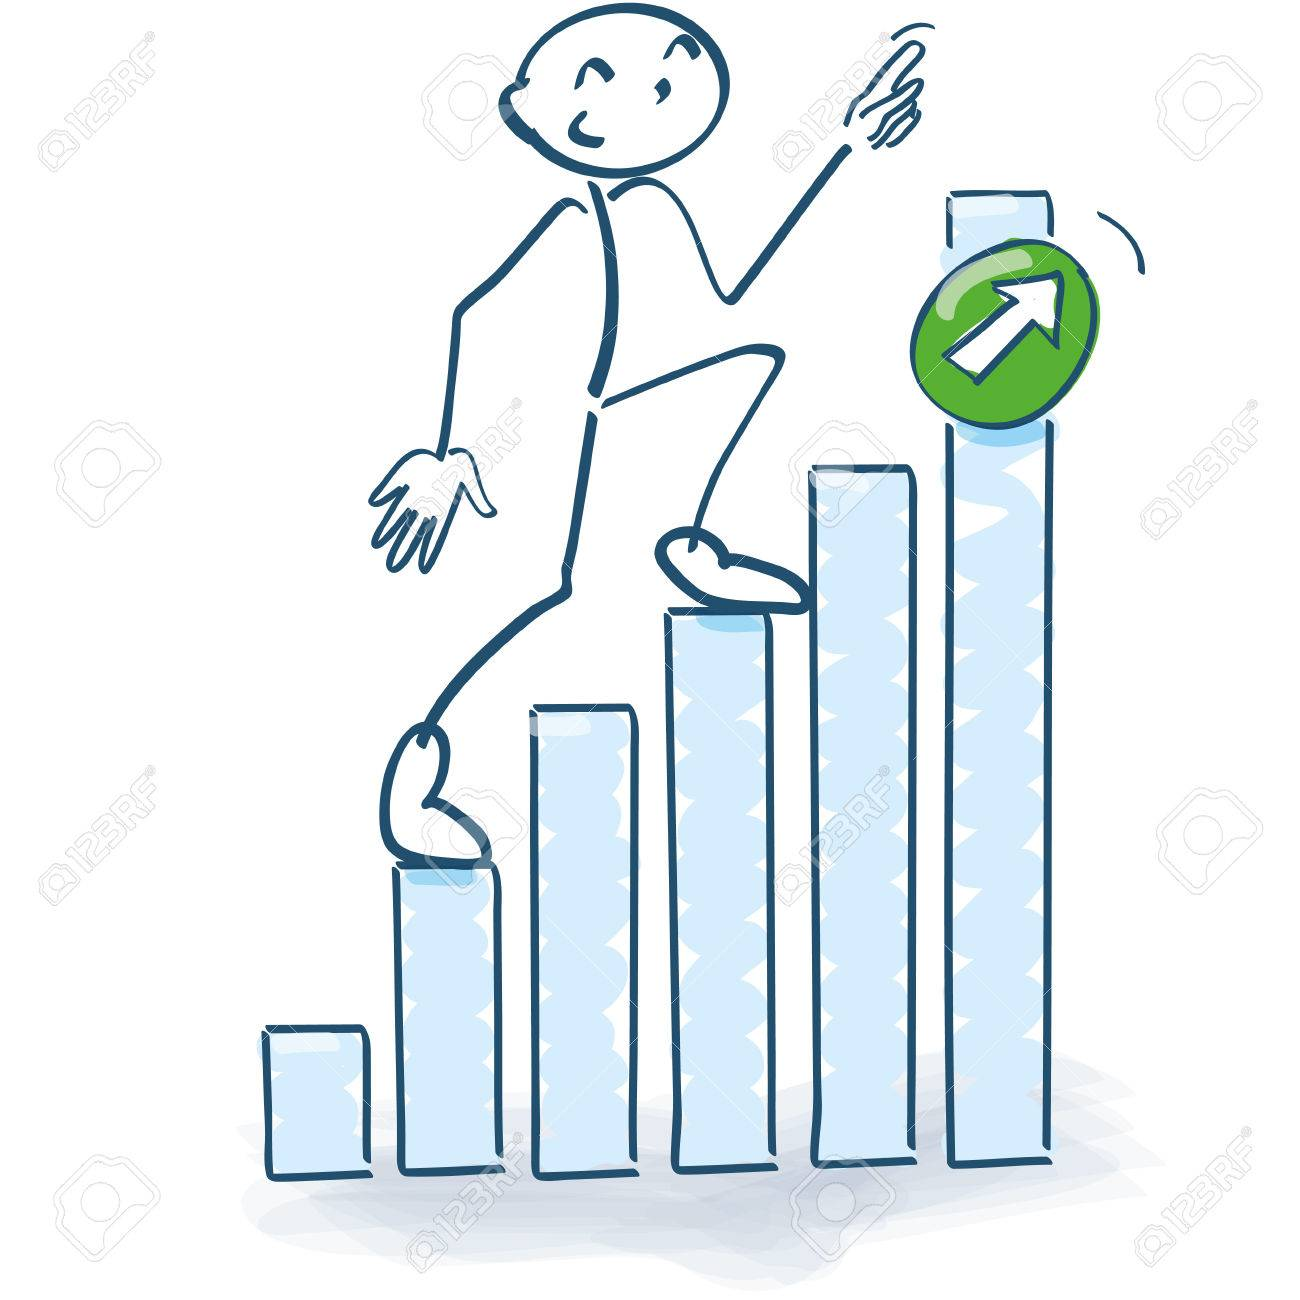 stick figure going up the bar graph upwards royalty free cliparts